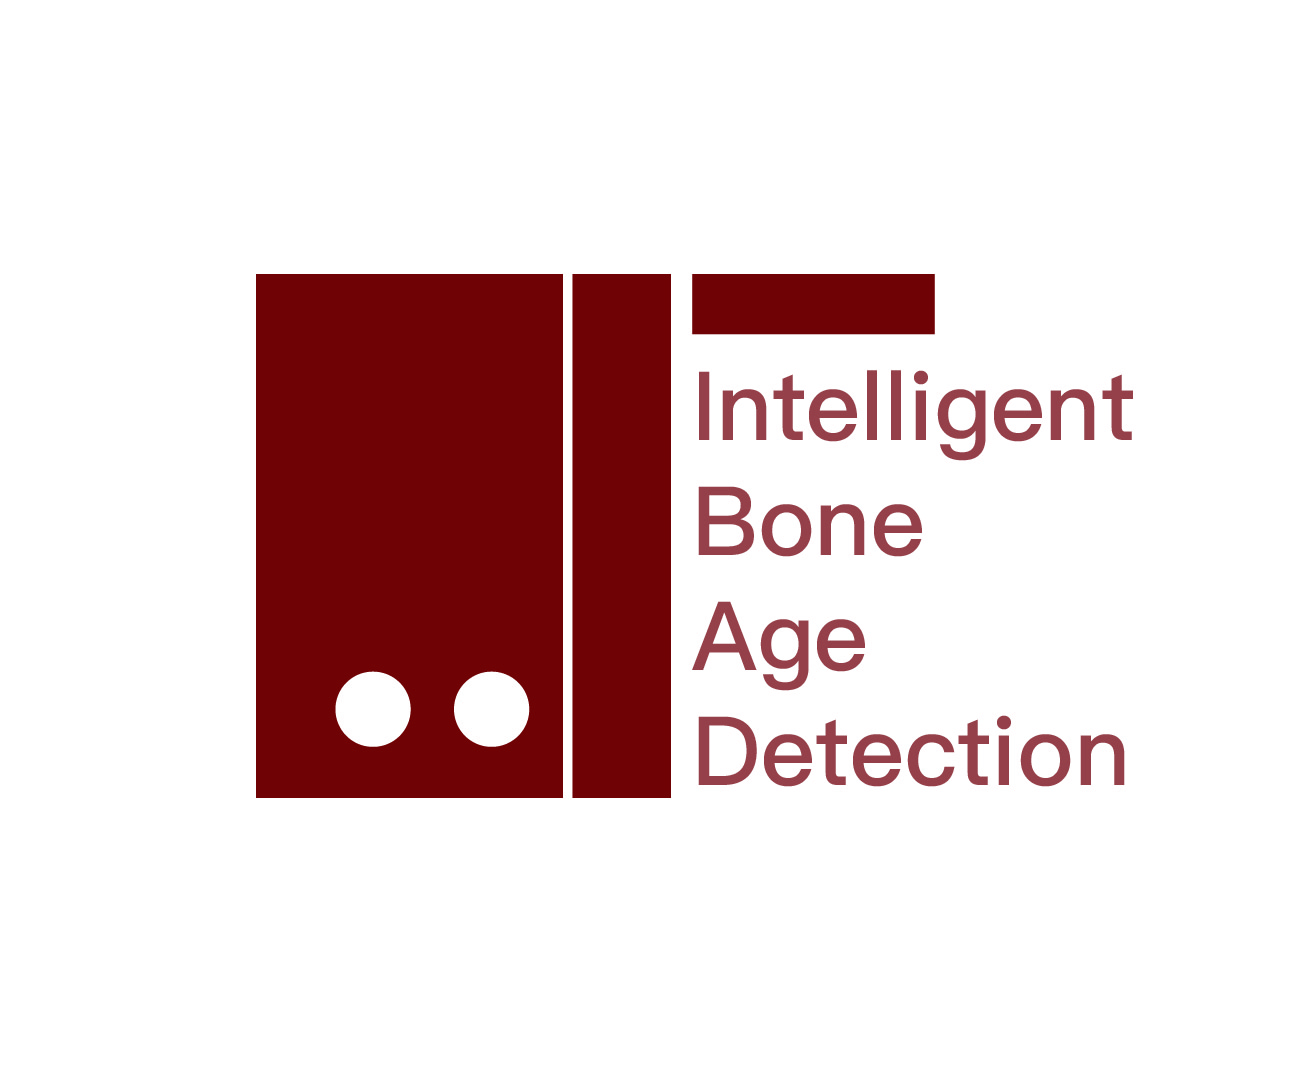 Intelligent bone age detection system